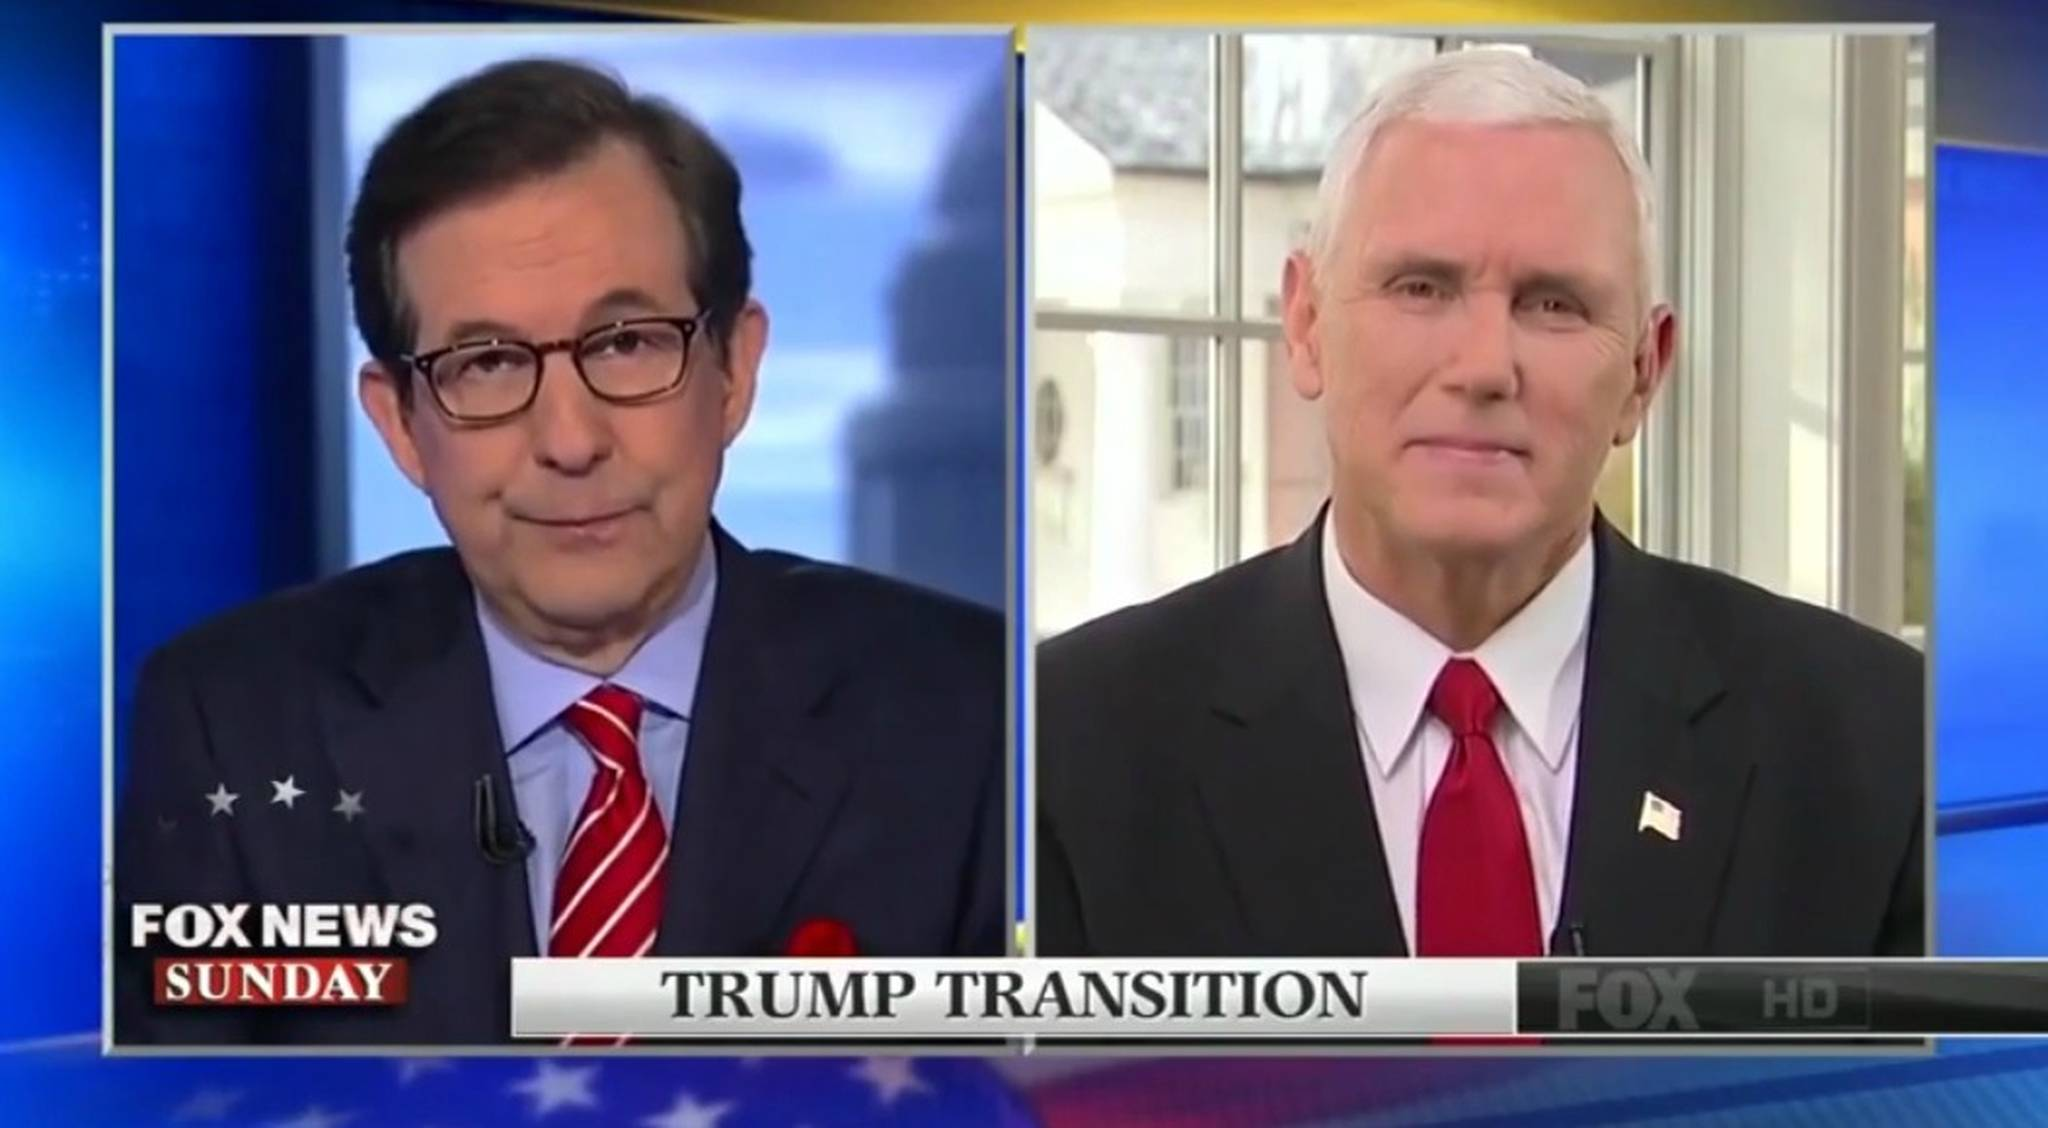 Mike Pence Fox News interview